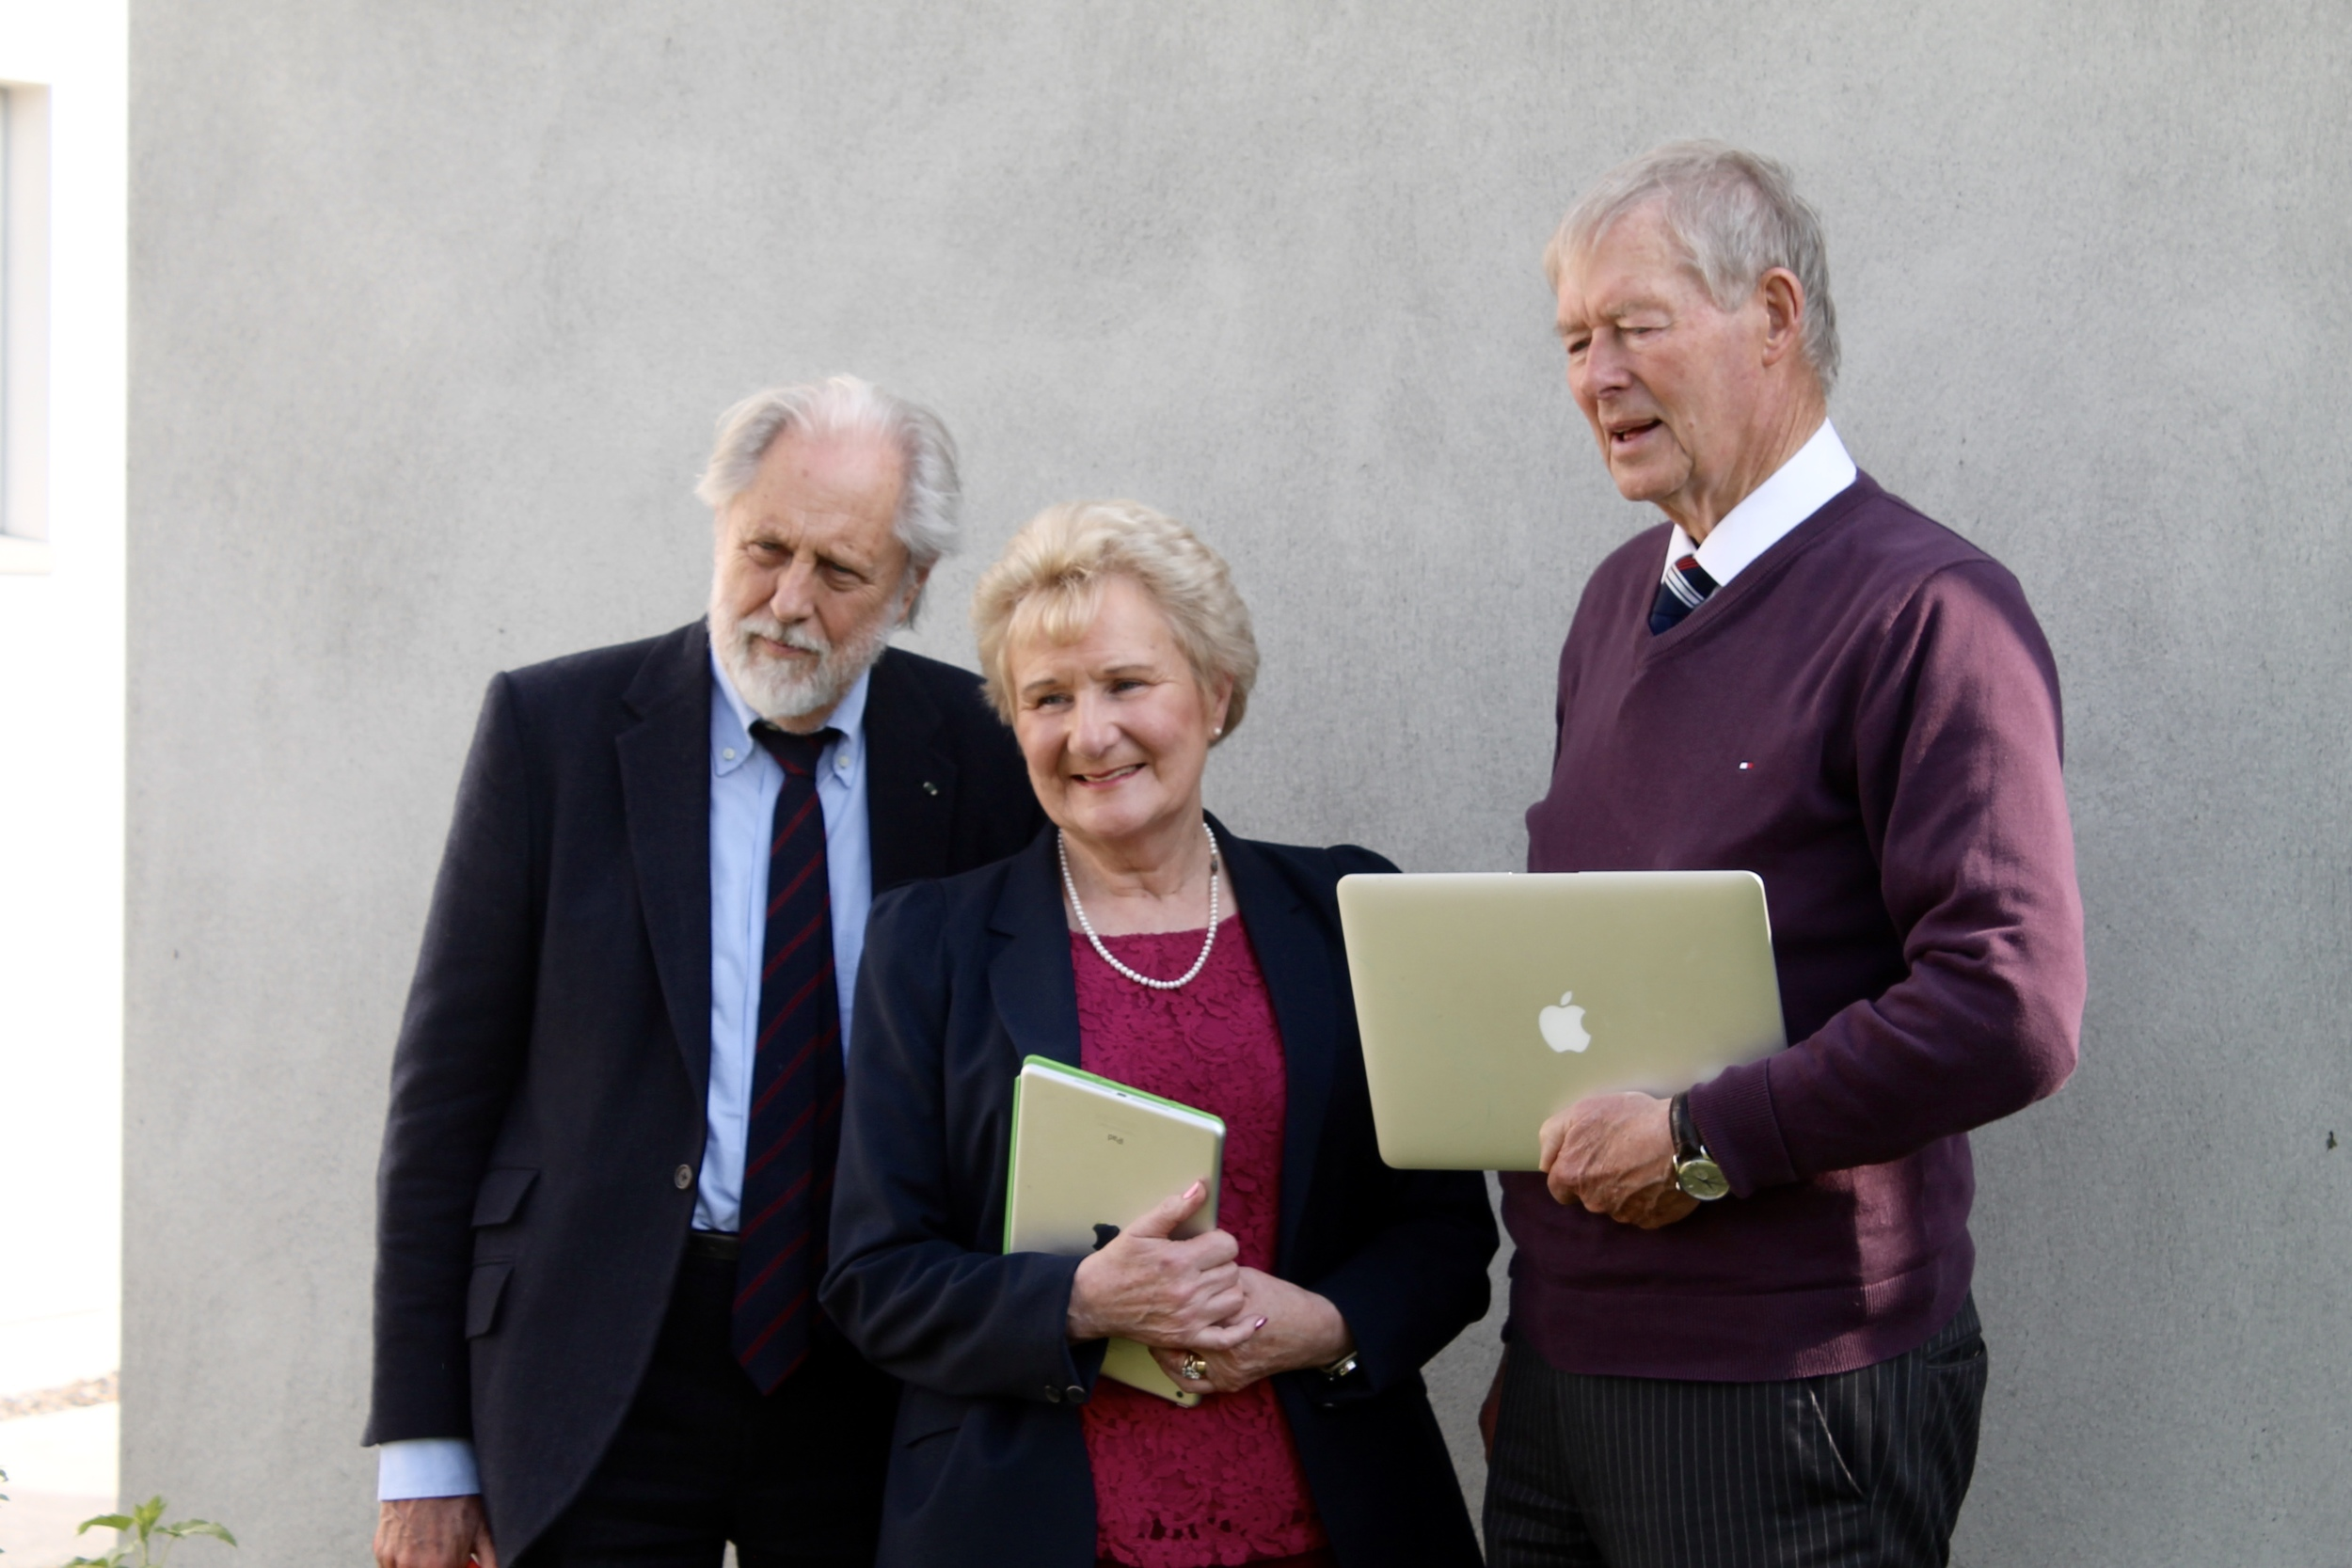 Read about how Third Age is empowering elderly people across Ireland in our Silicon Republic spotlight, ' Bringing digital skills to the young, the old and the marginalised ' (May 2016)